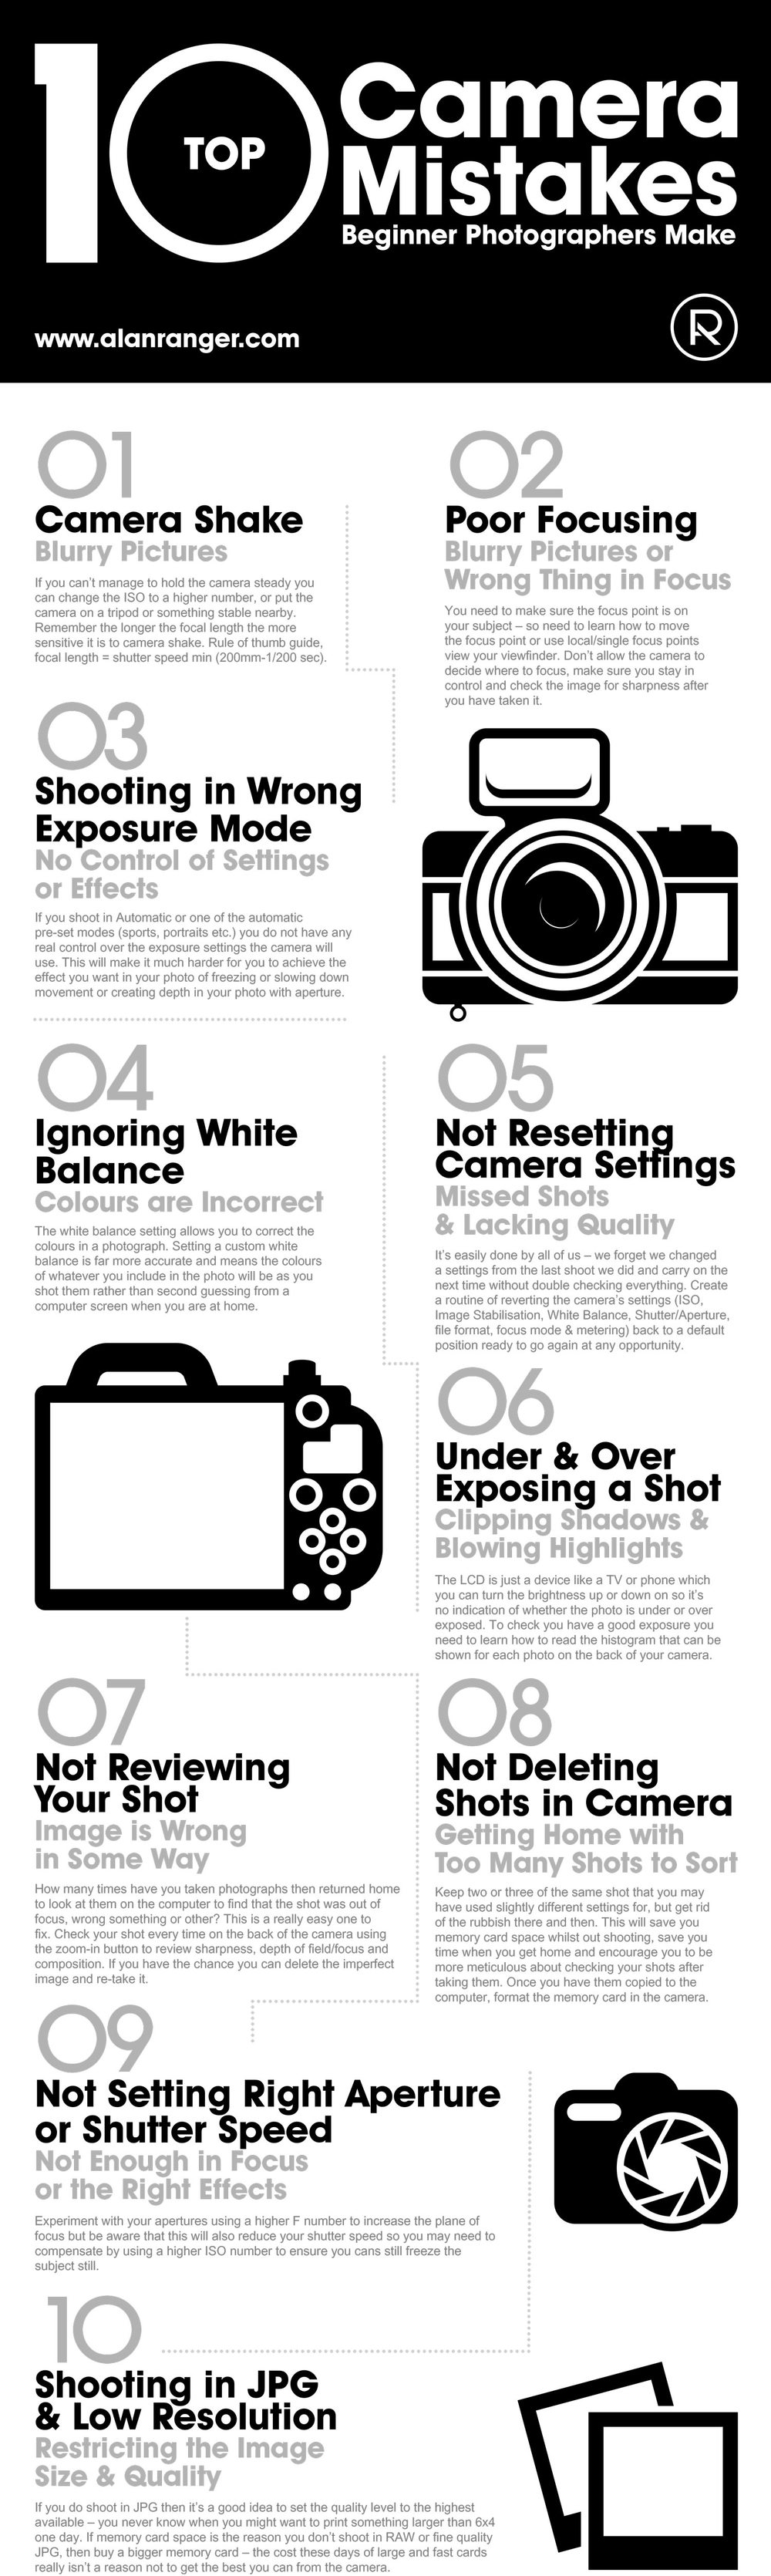 10 camera mistakes infographics.JPG